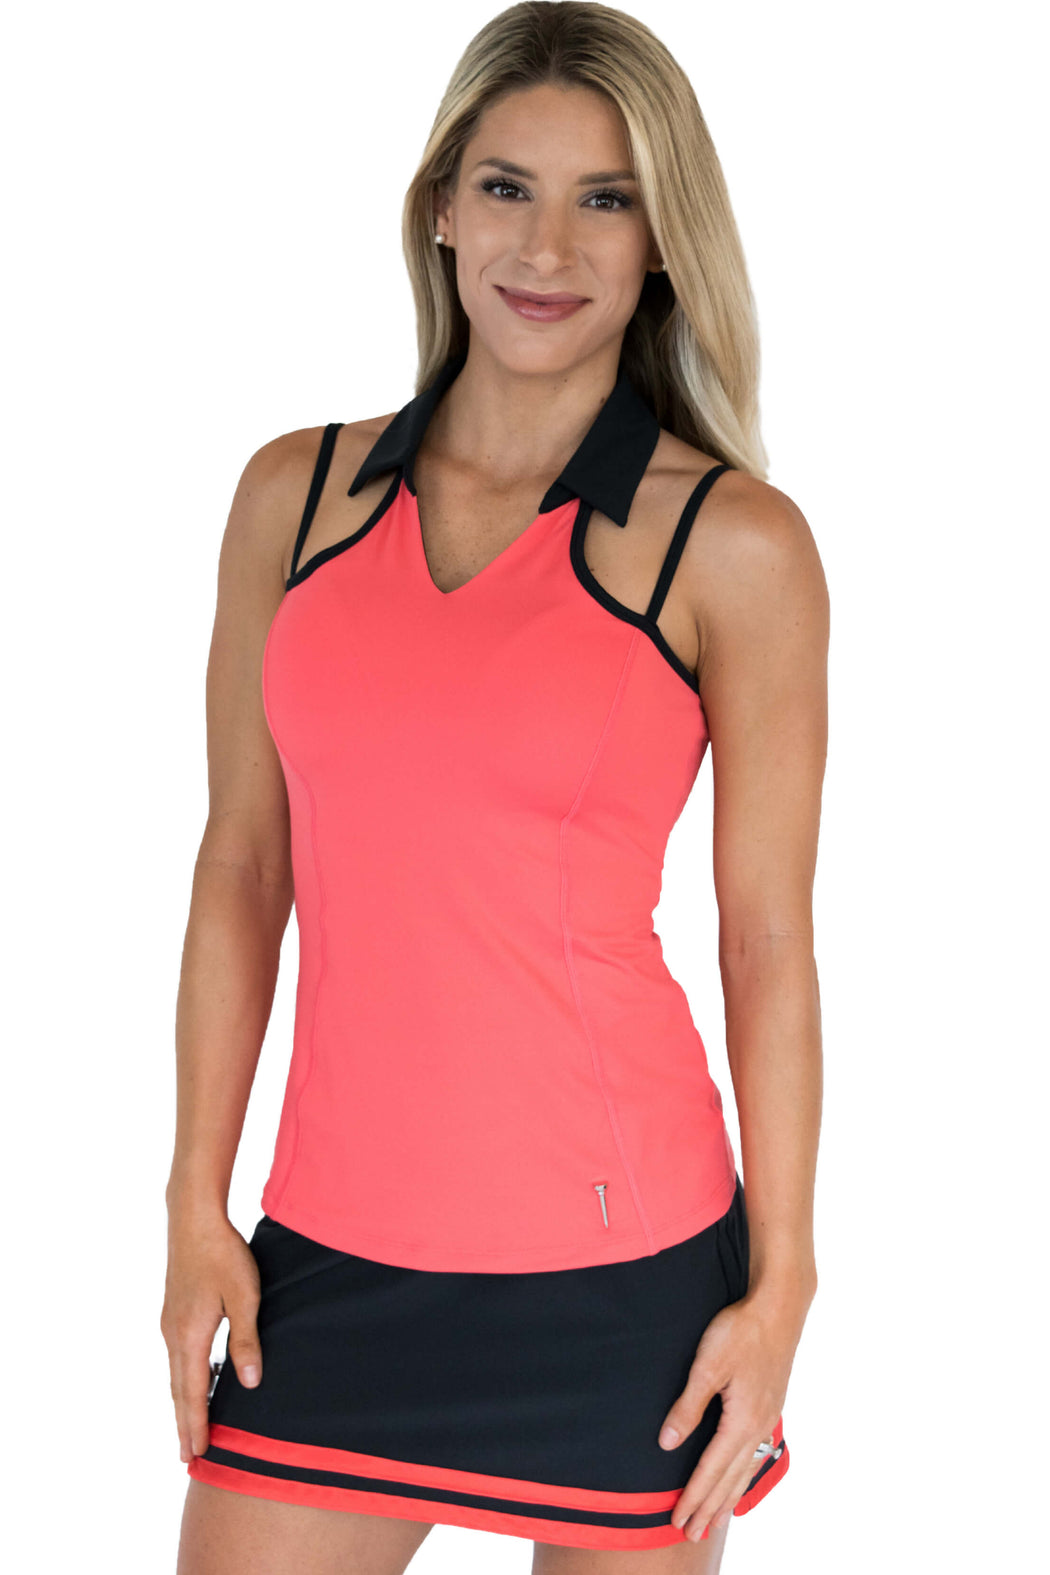 NEW! Strap Back Golf Polo - Haute Coral w/Black Straps - FlirTee Golf